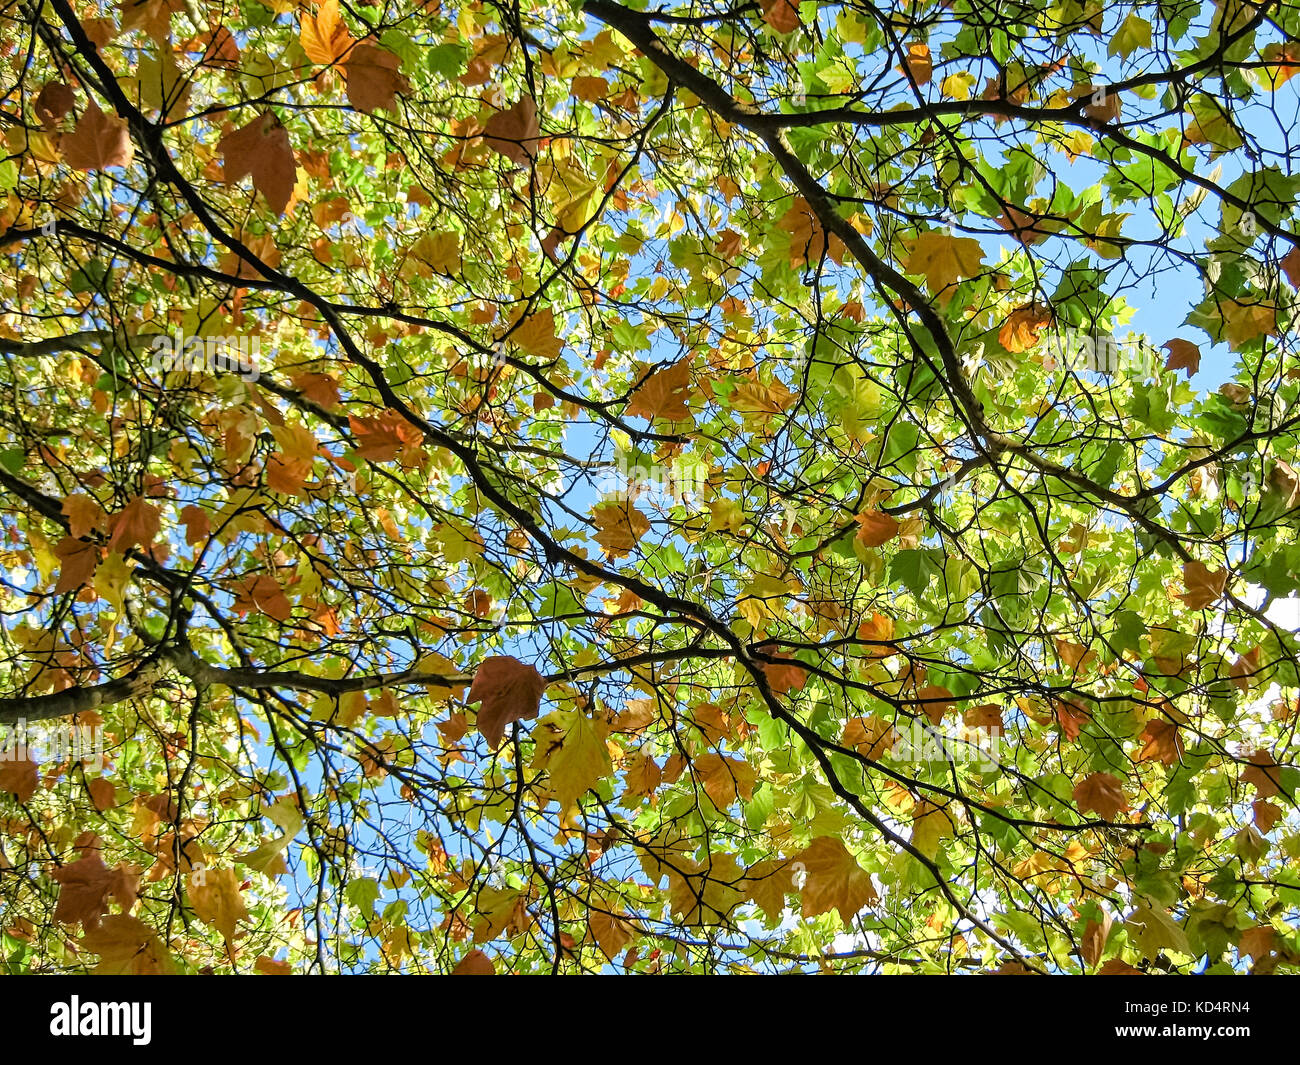 Canopy of colorful autumn leaves - Stock Image